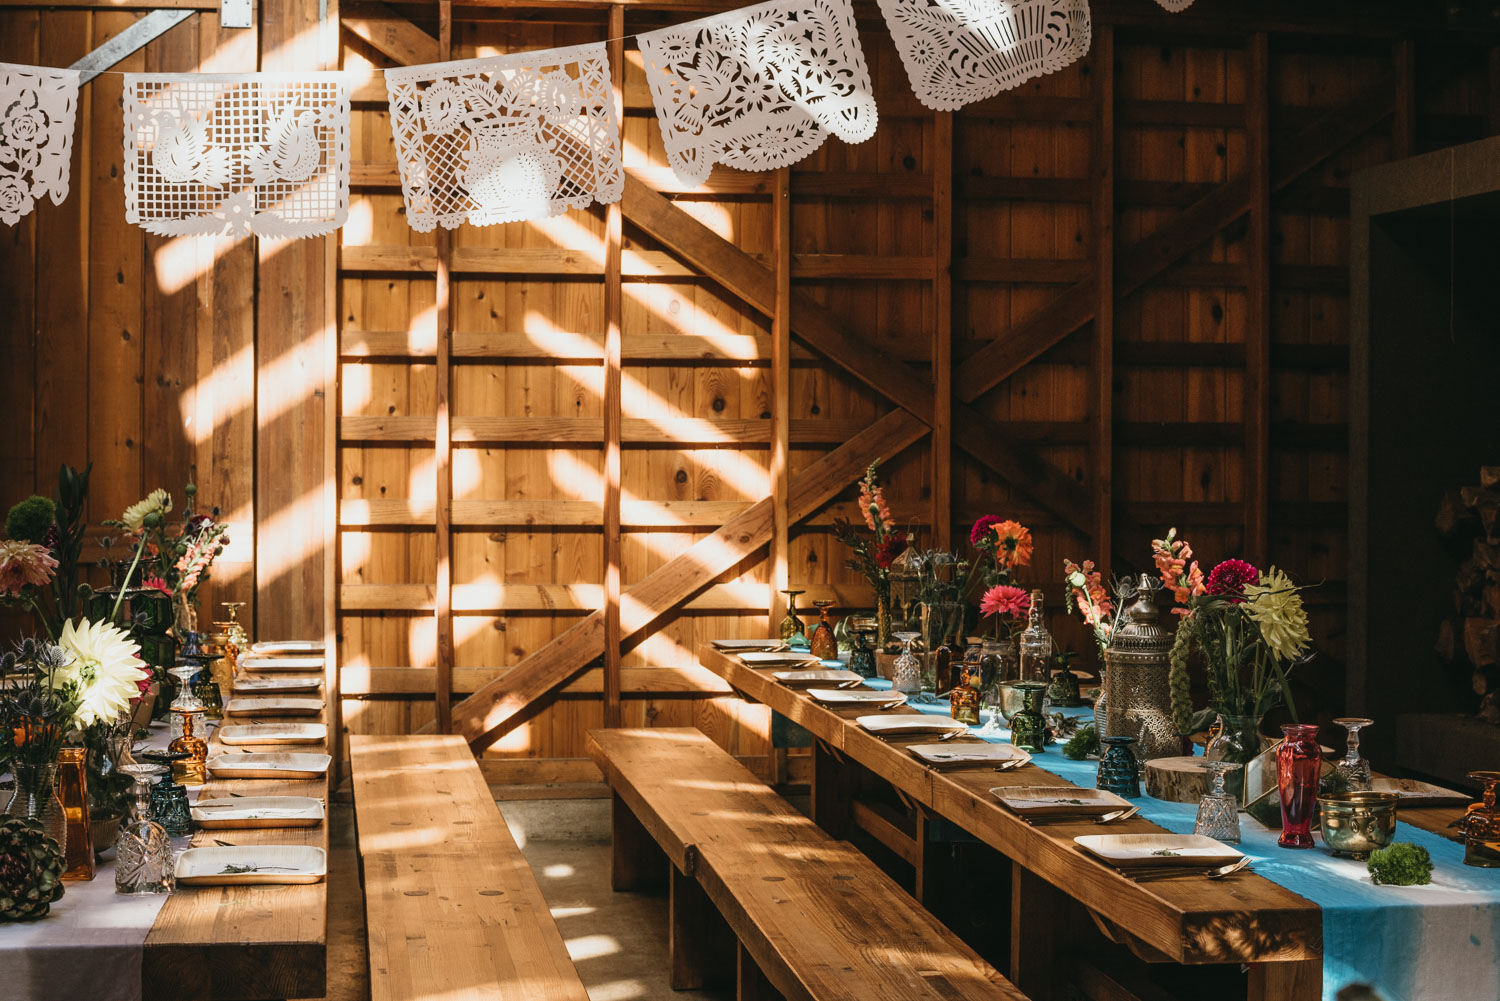 DIY wedding decorations in cabin